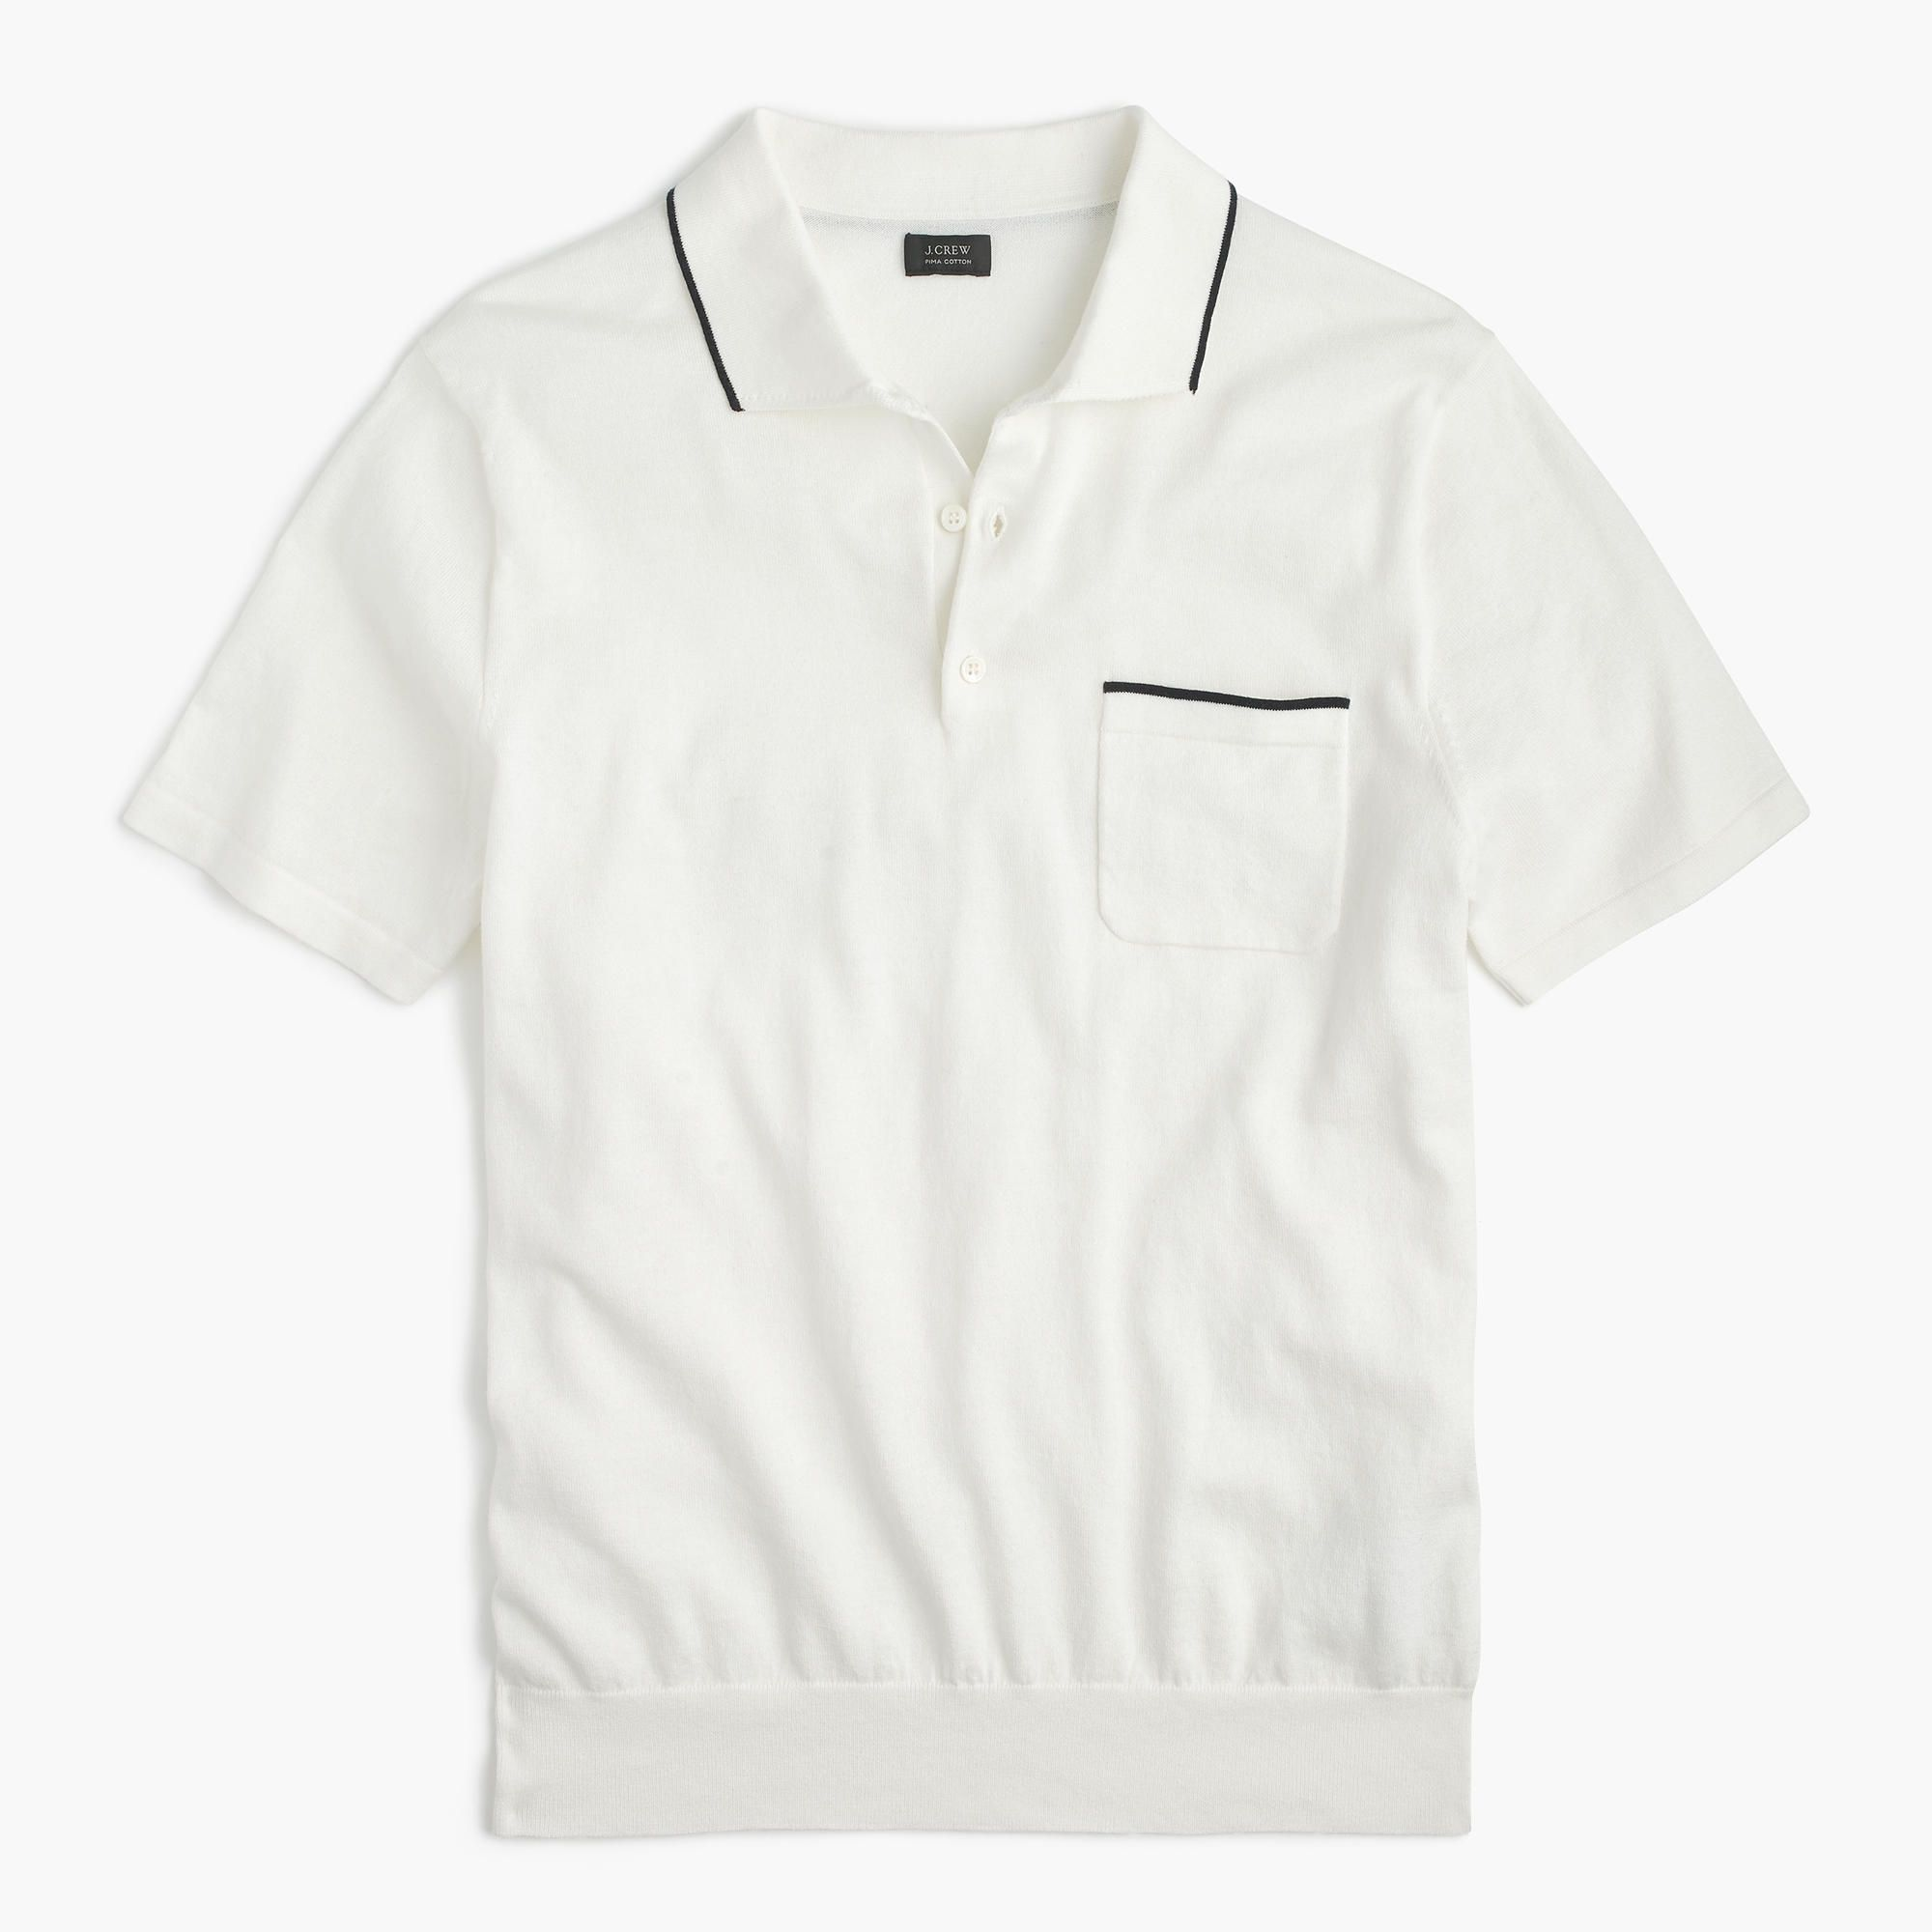 9095bb7a50d3 J.Crew - Pima cotton short-sleeve sweater-polo in white